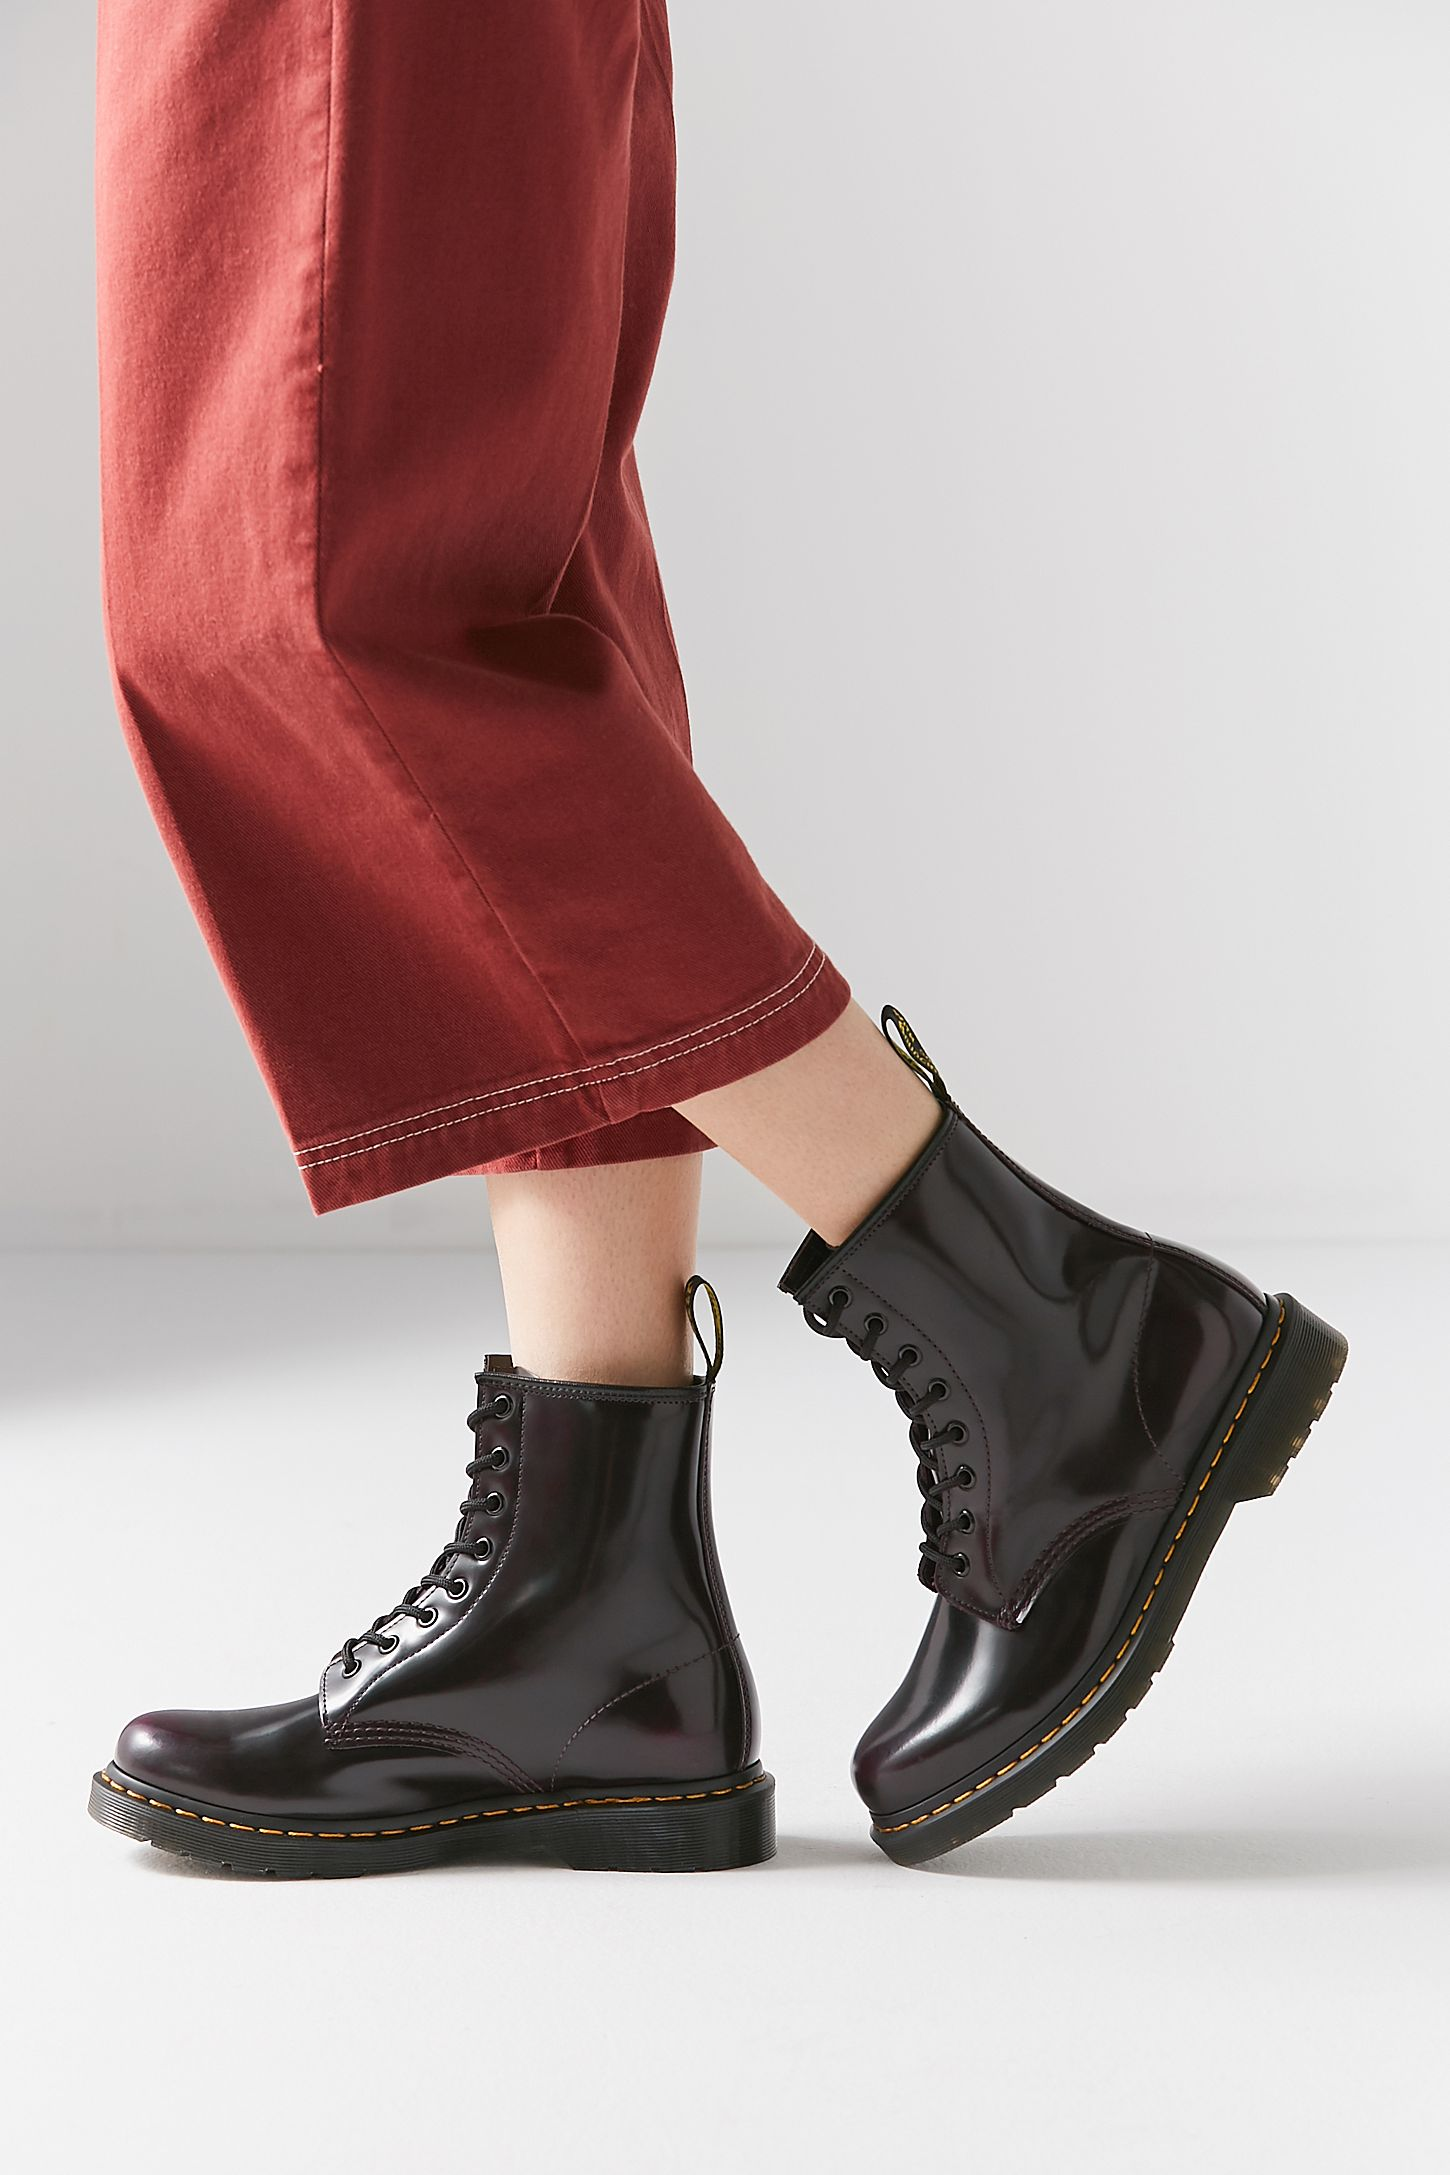 5b1f897e4b7 Dr. Martens 1460 Smooth Cherry Boot